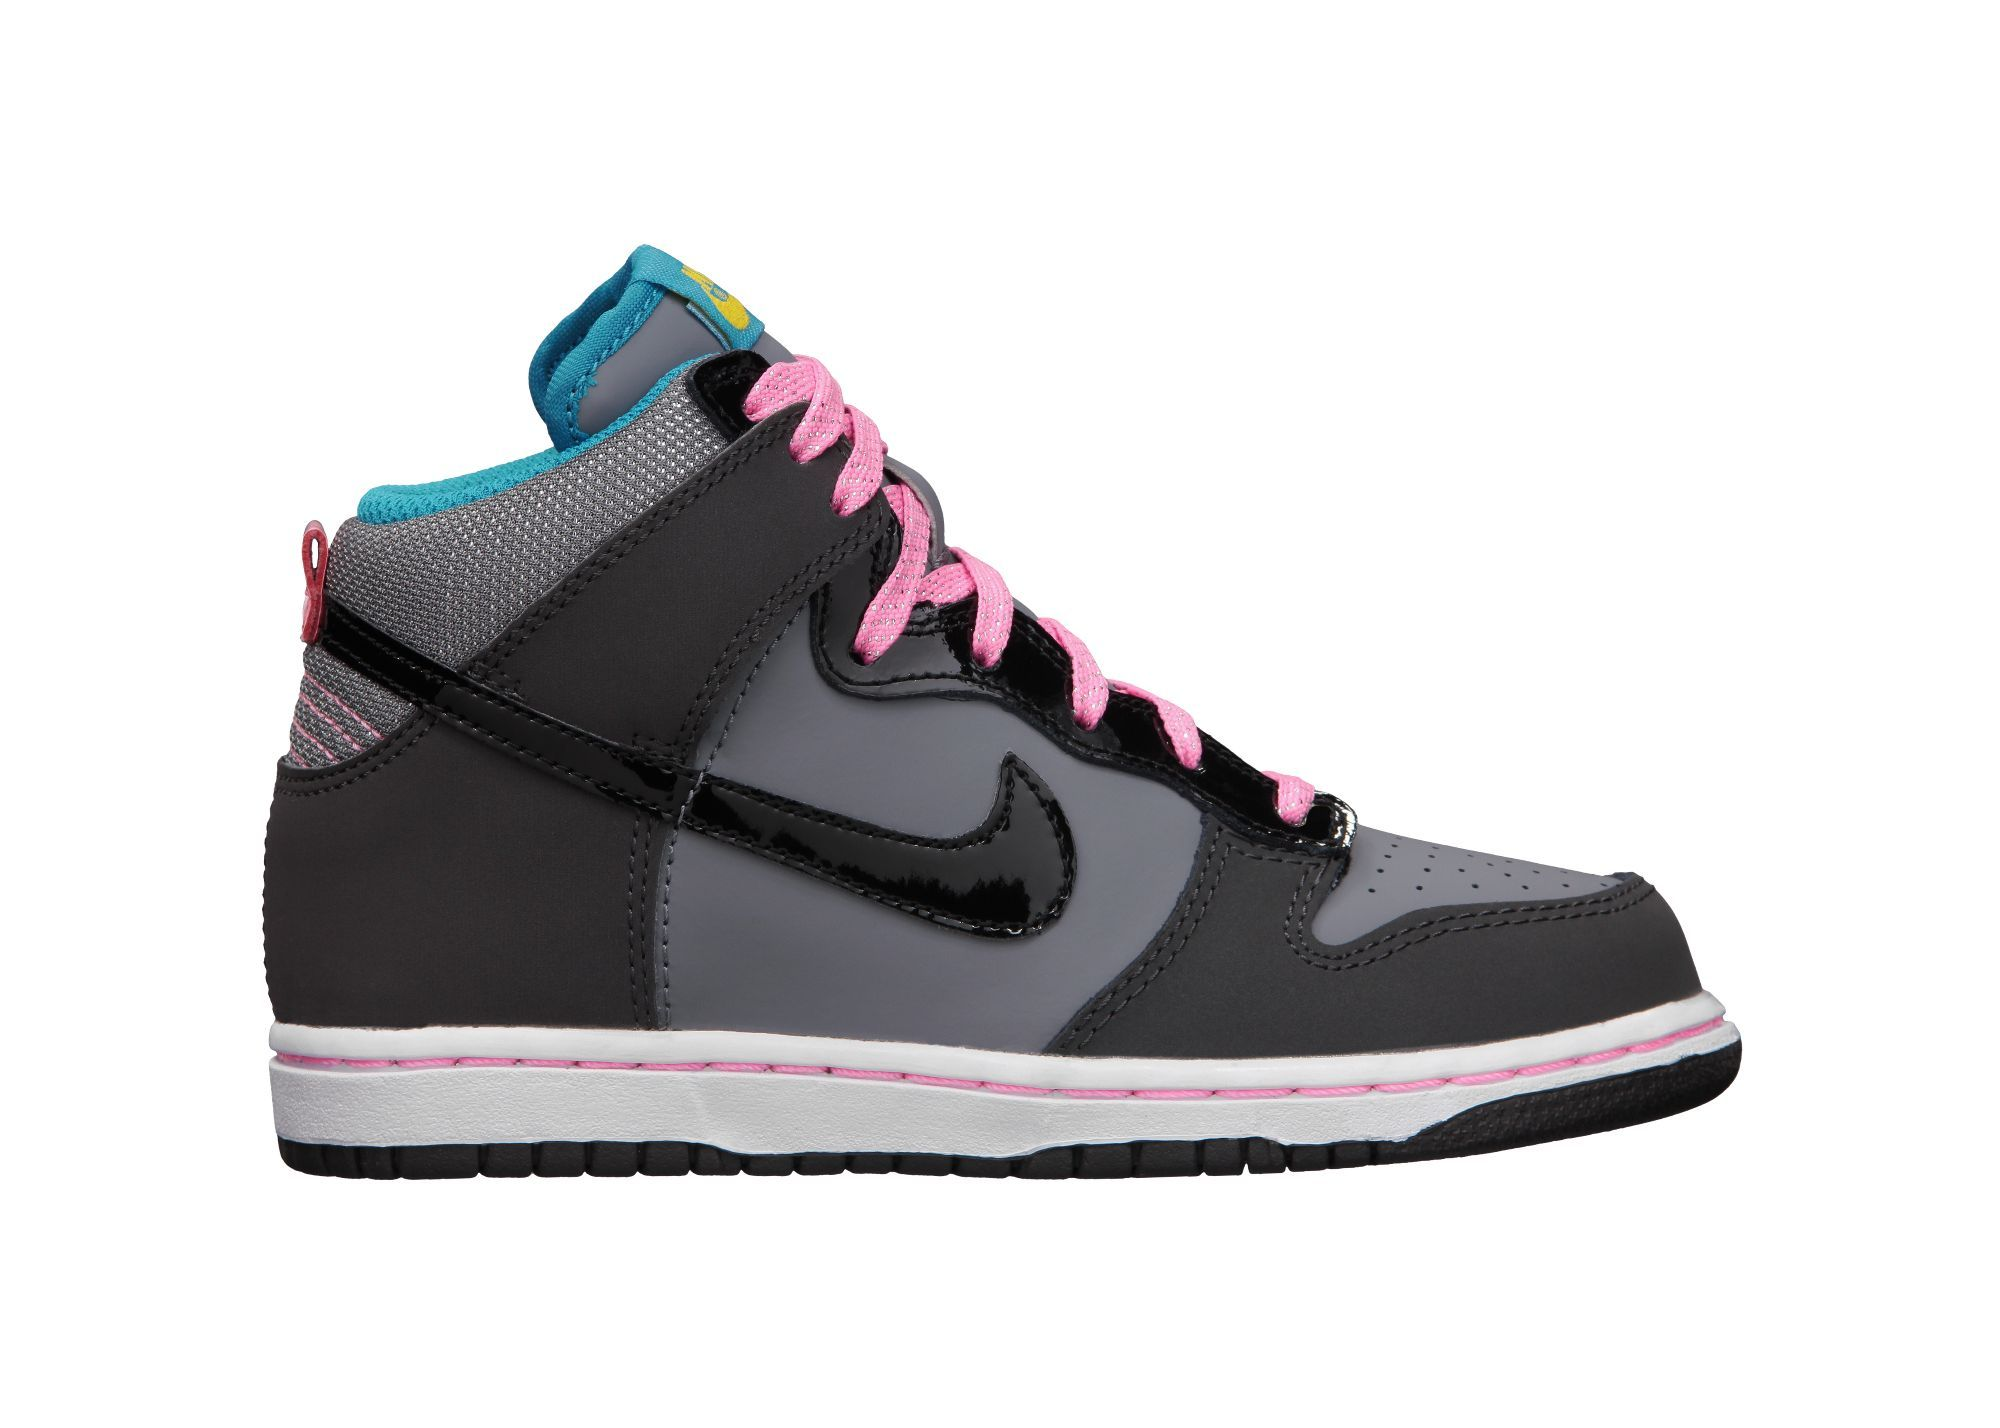 Trends For Cute Nike Shoes For Teen Girls Shoes In 2019 Cute